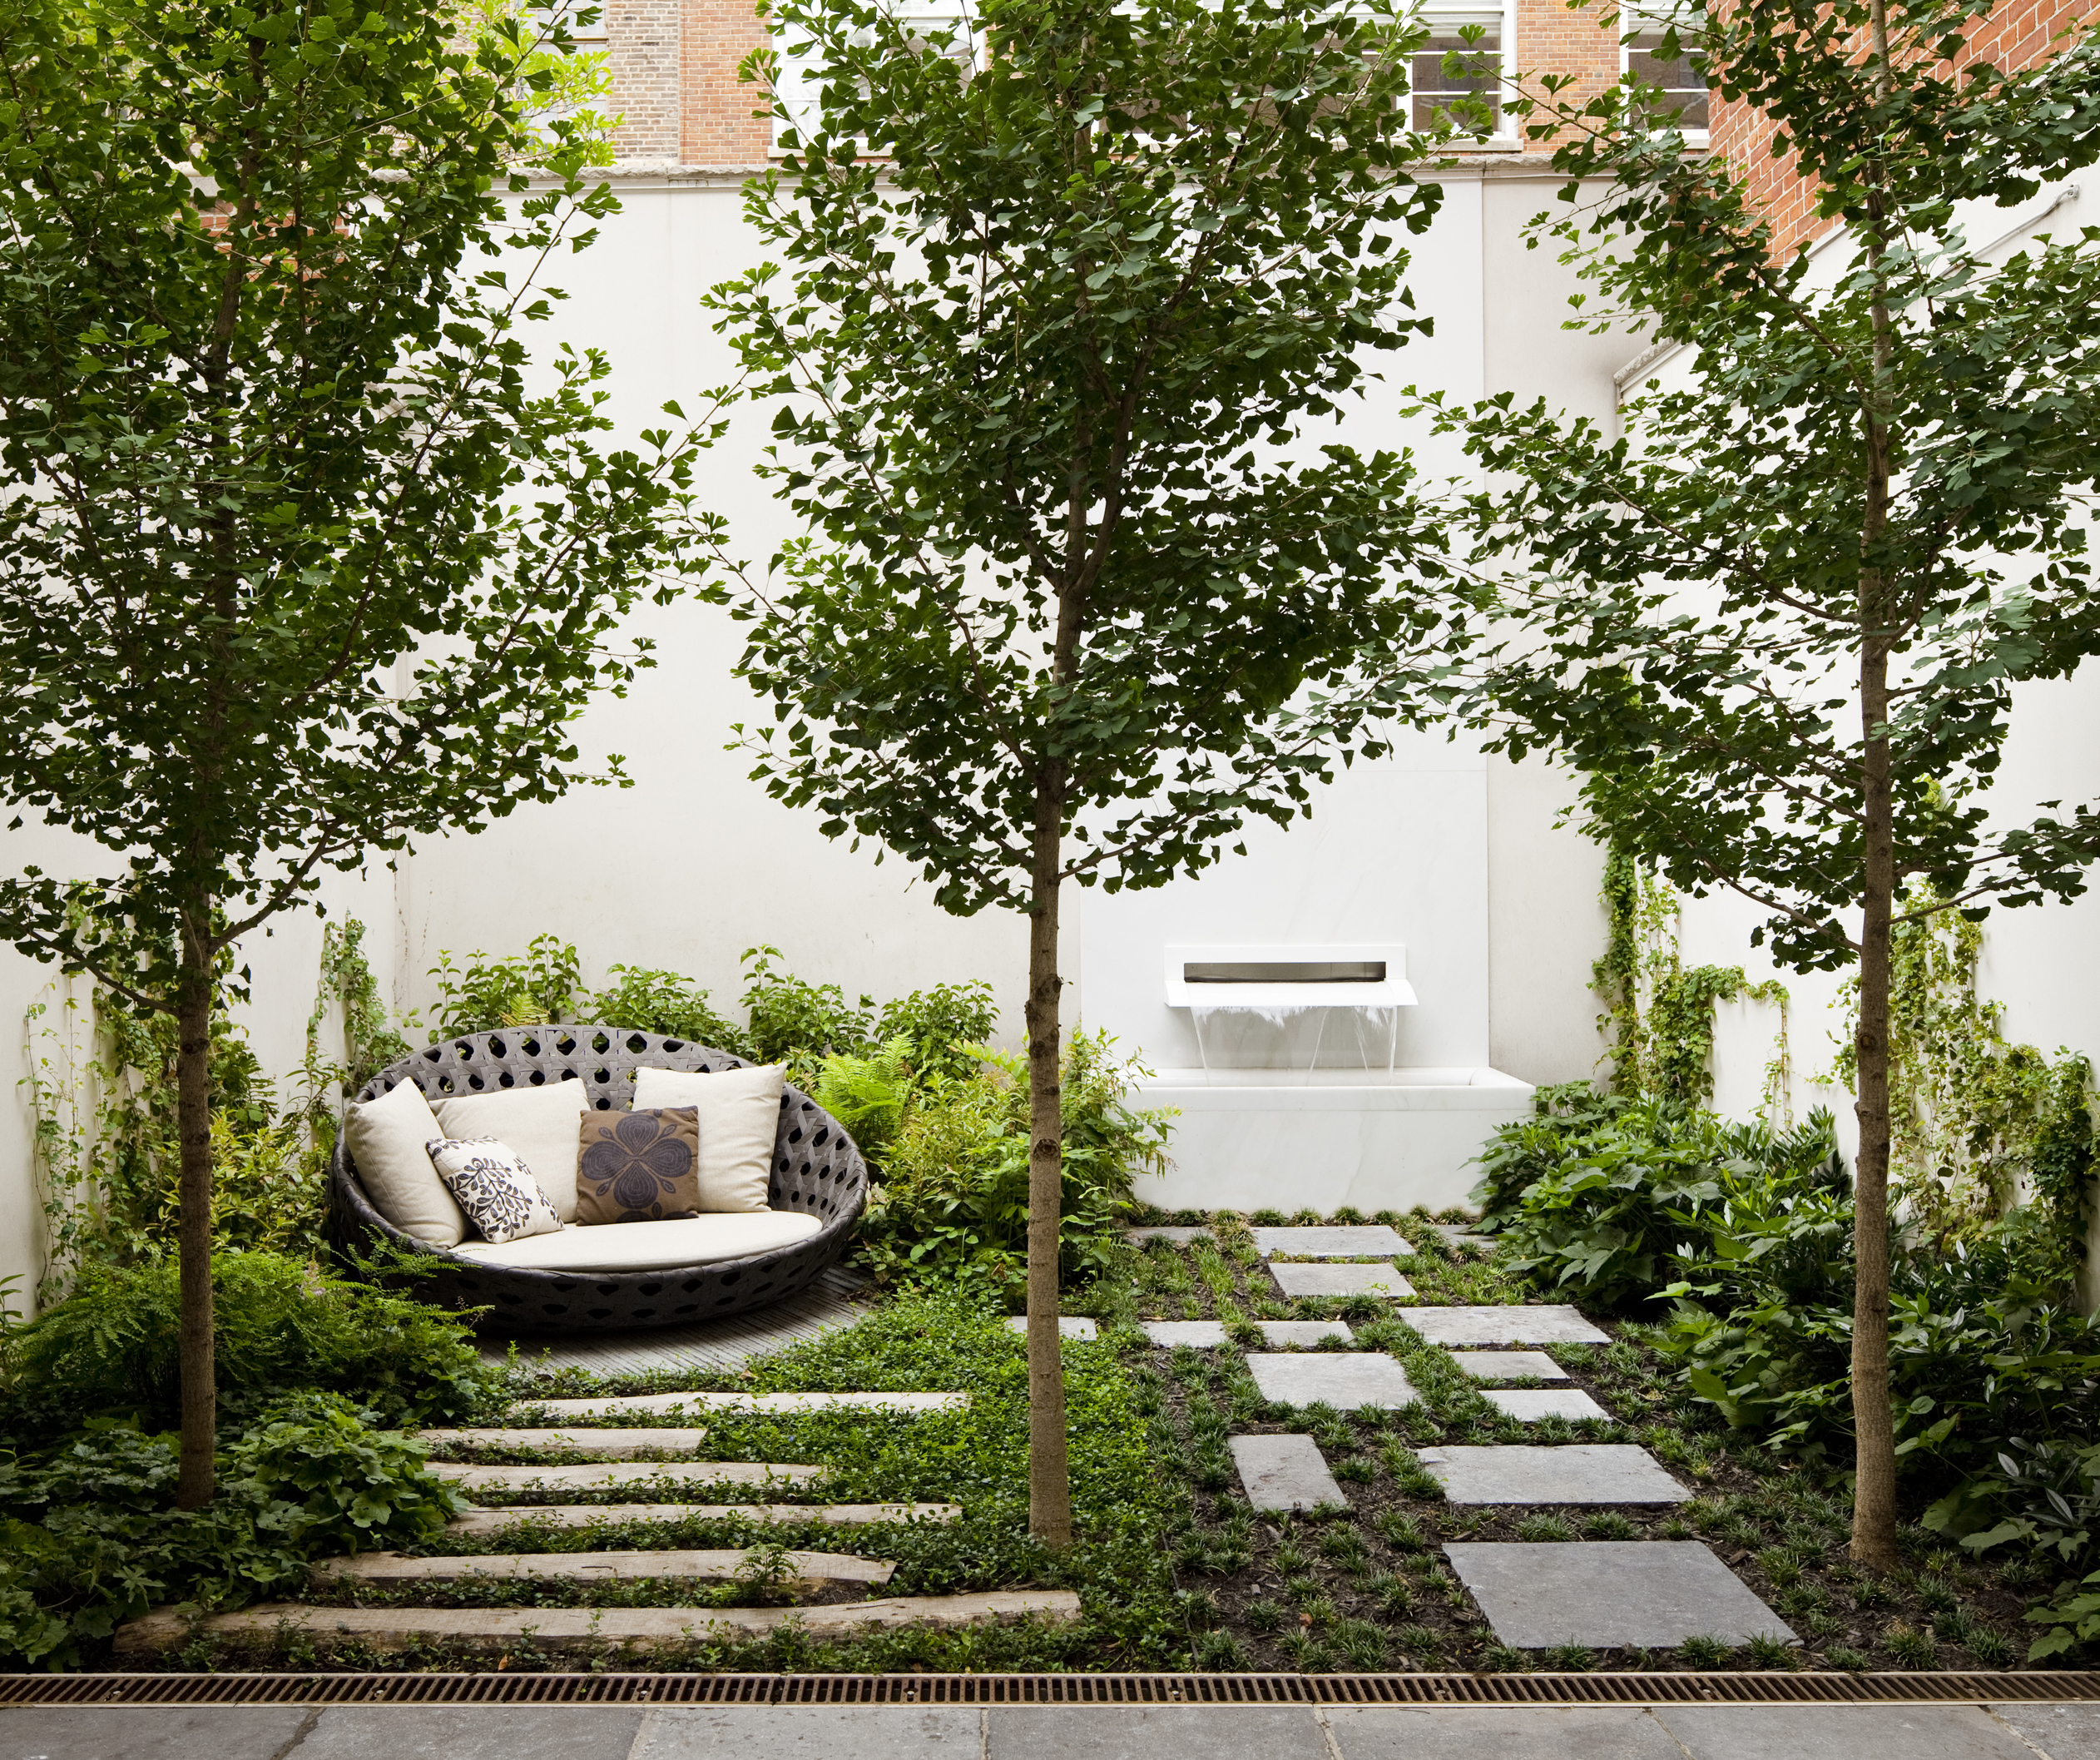 Asla 2011 professional awards carnegie hill house for Canteros de jardin